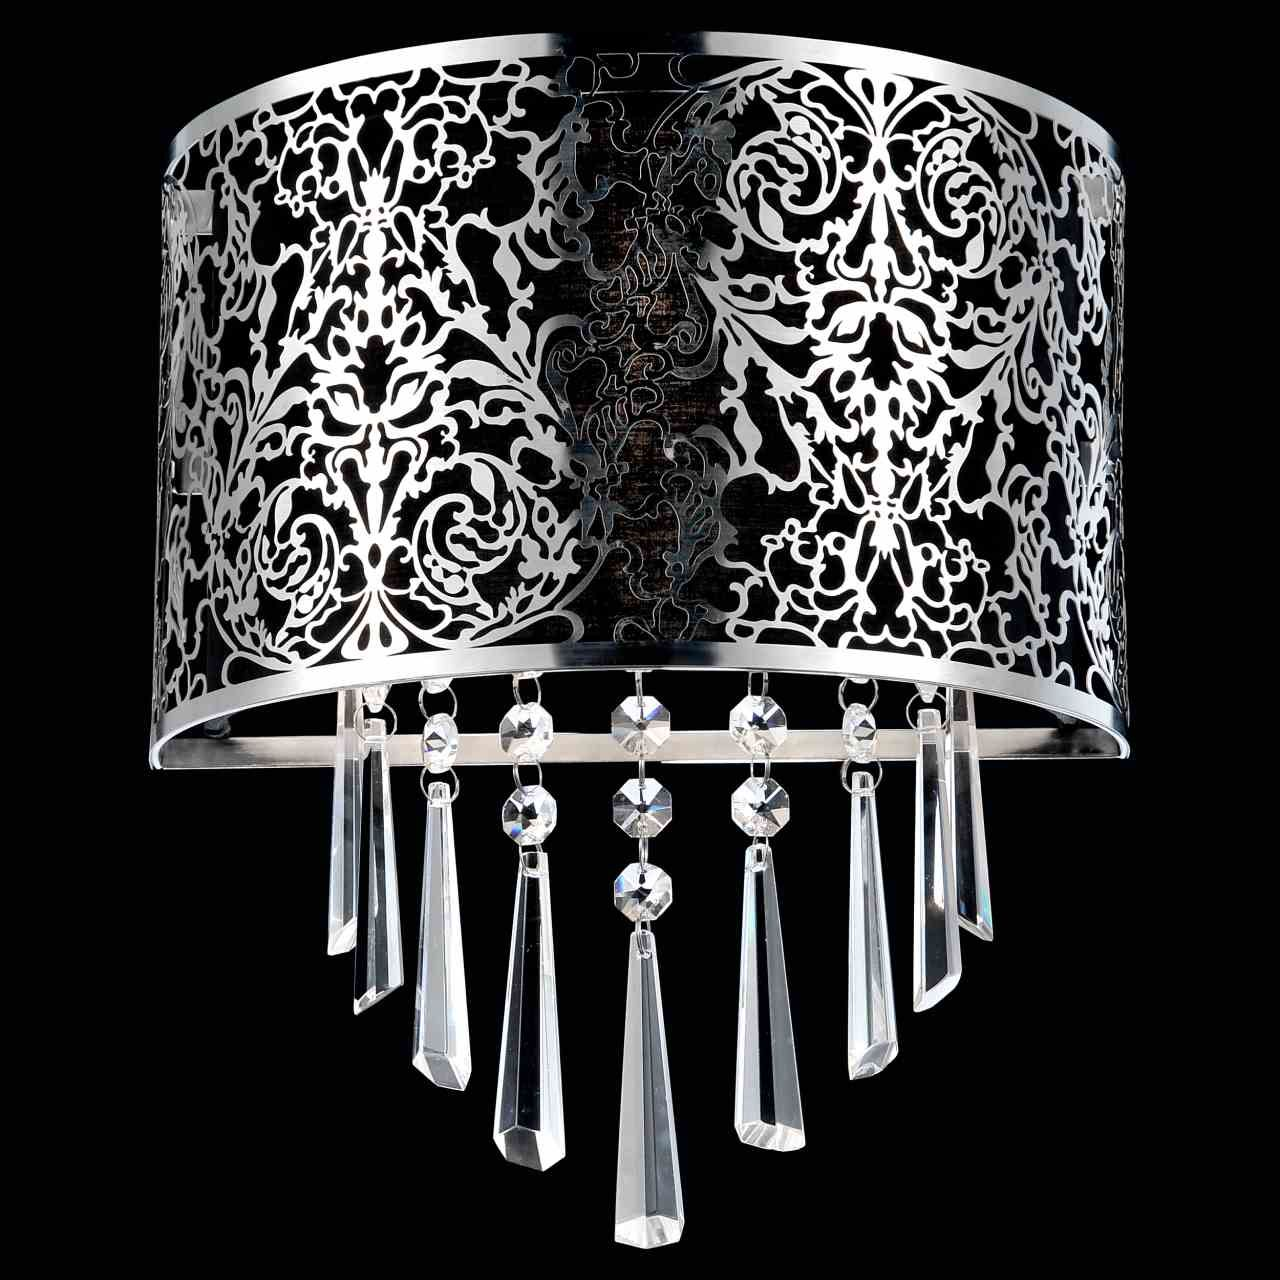 12 Drago Modern Crystal Round Laser Cut Stainless Steel Shade Black Fabric Wall Sconce 2 Lights